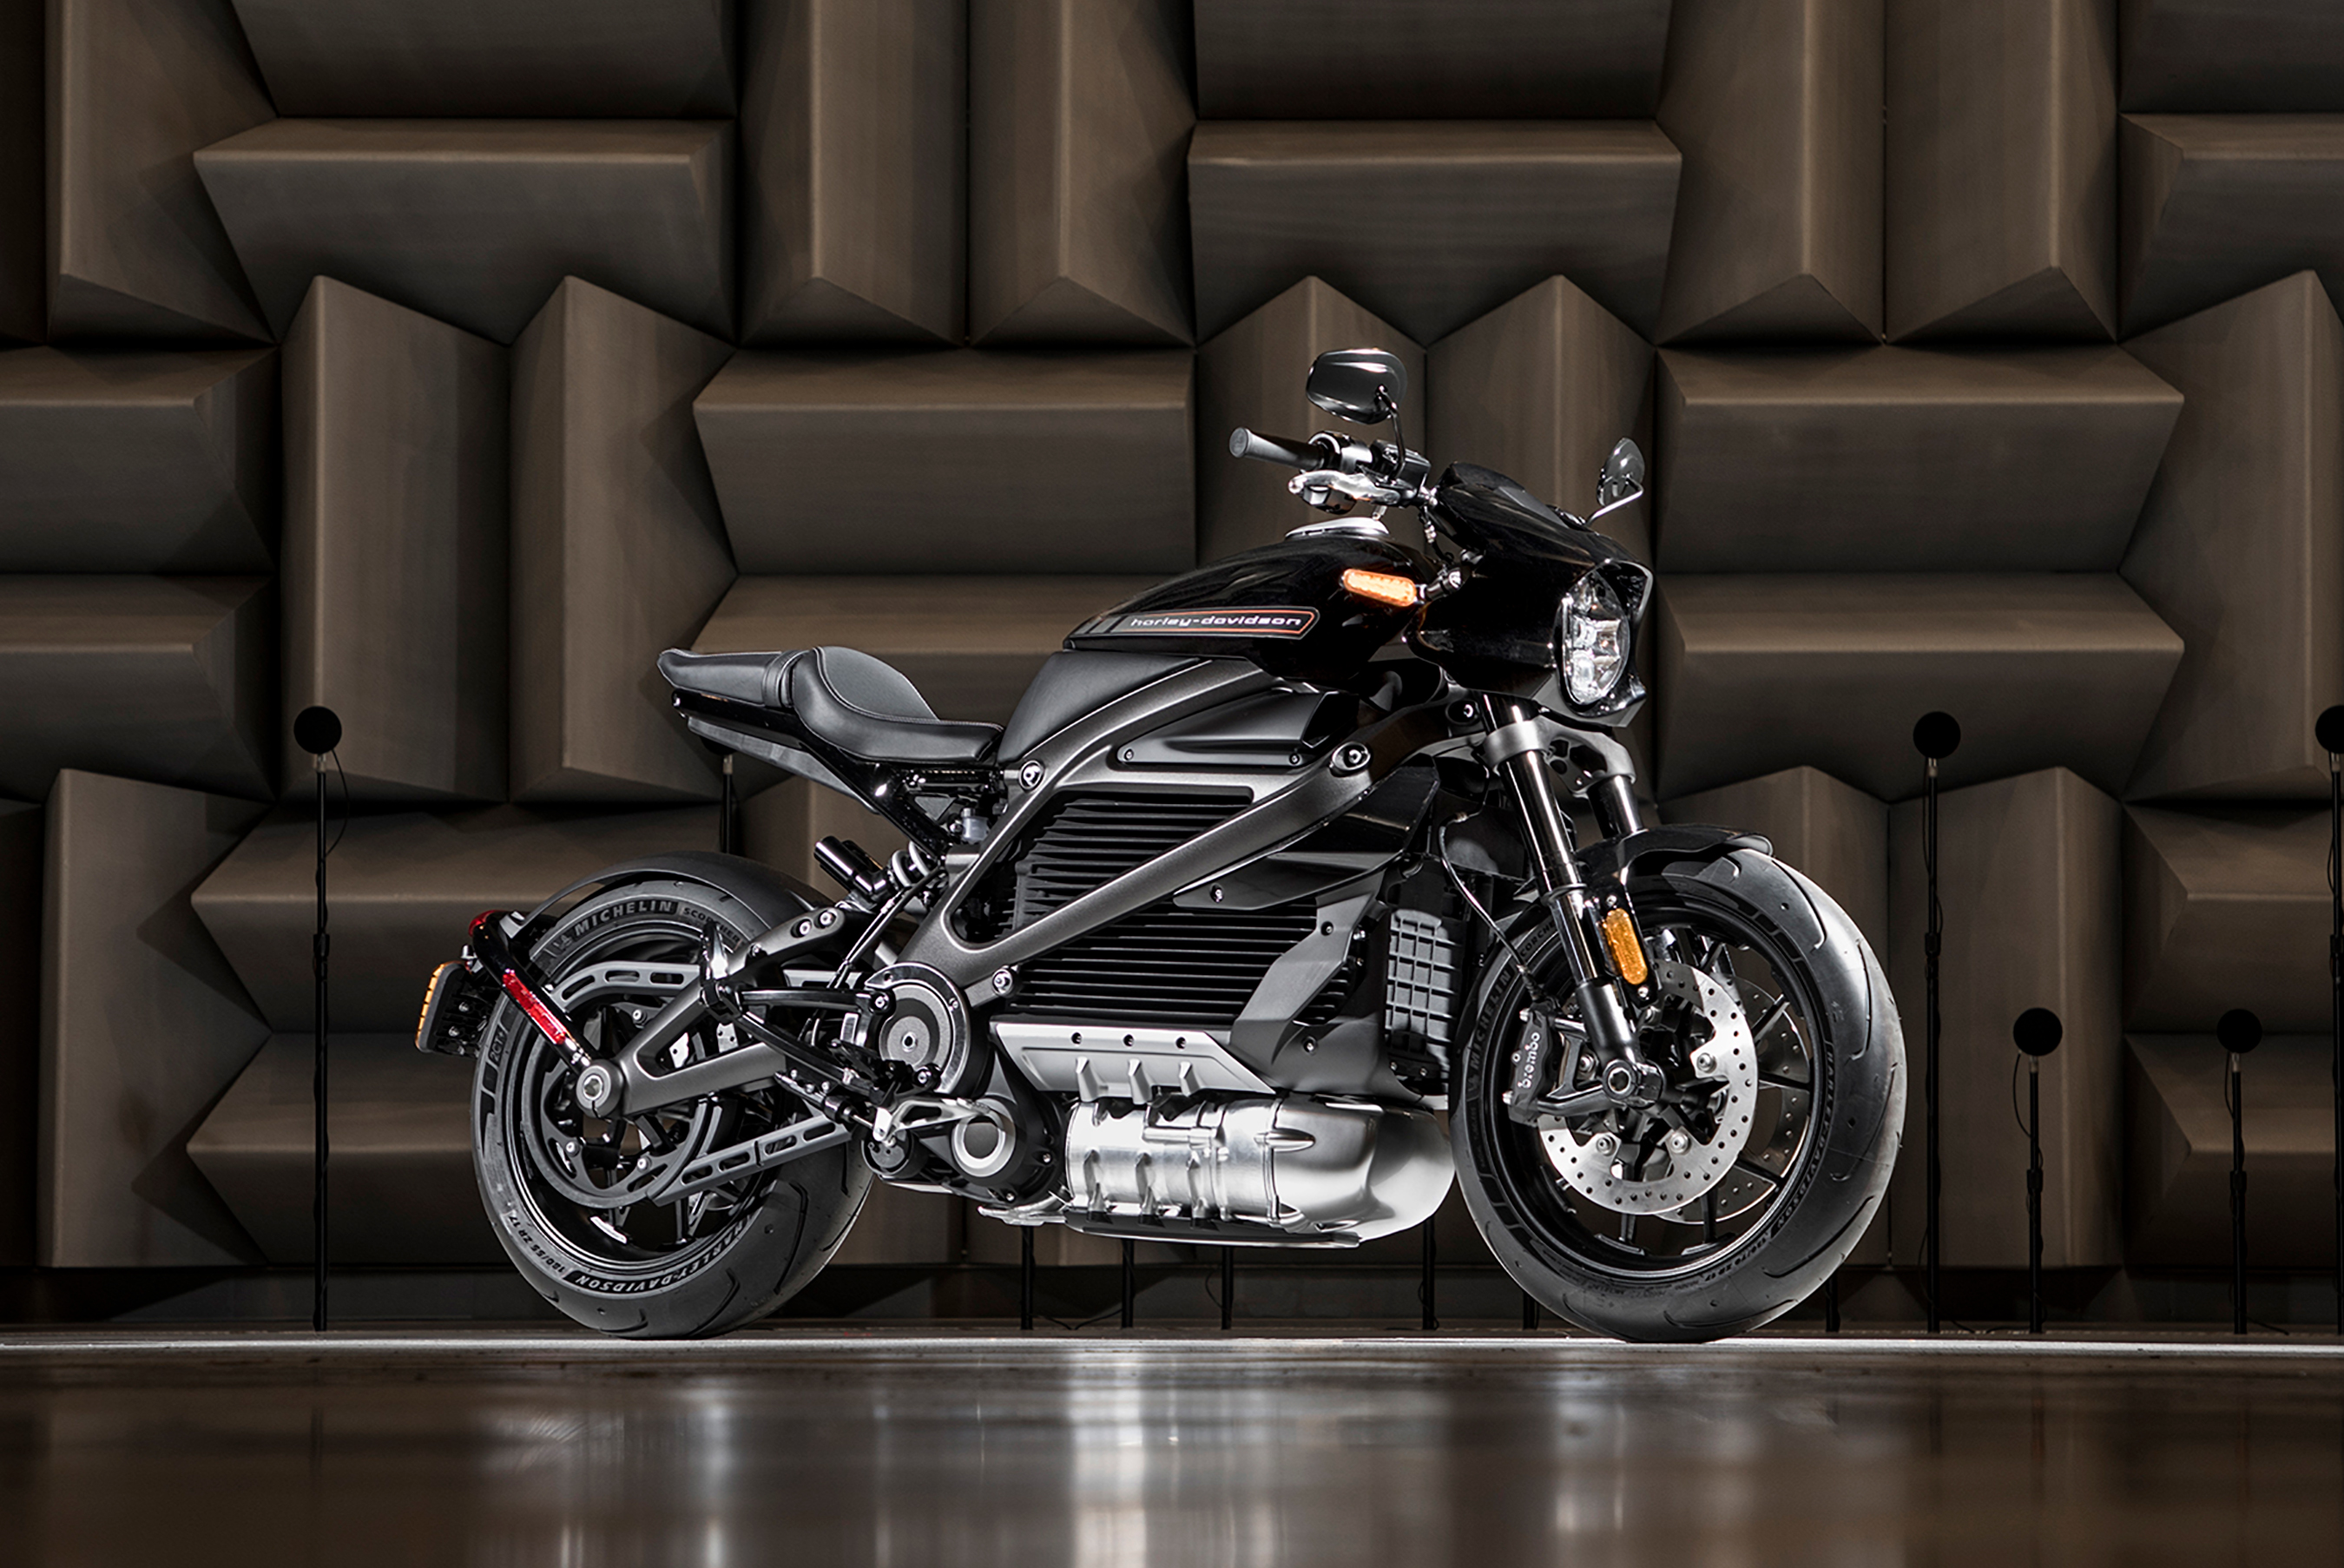 """Harley-Davidson's electric motorcycle, LiveWire(tm) -- the first in a broad, no-clutch """"twist and go"""" portfolio of electric two-wheelers designed to establish the company as the leader in the electrification of the sport - is planned to launch in 2019."""